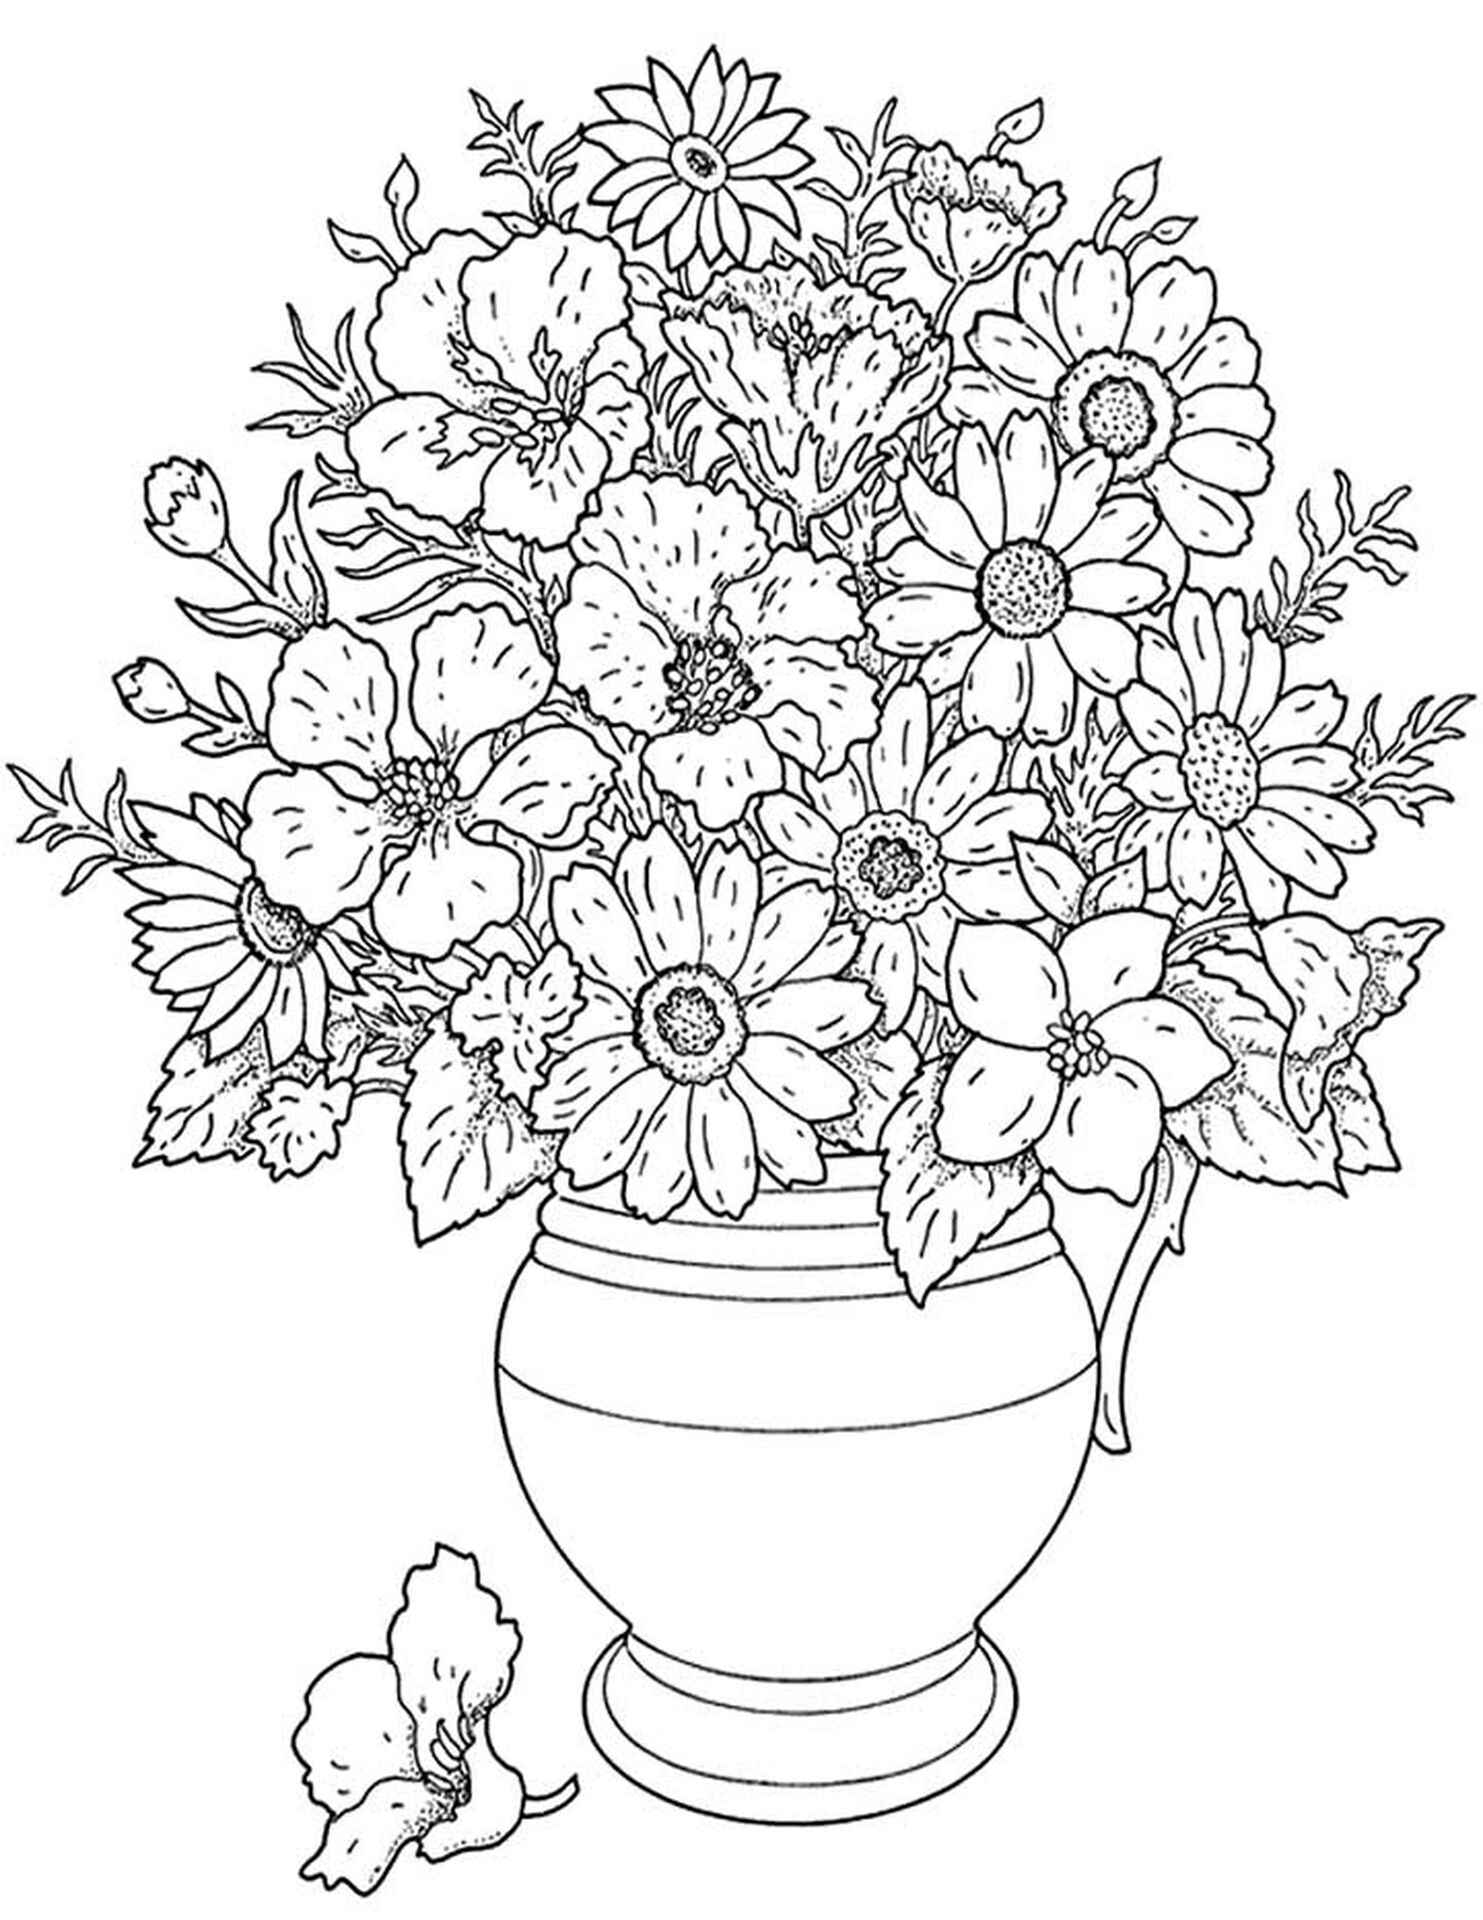 Free Coloring Pages Adults Flowers